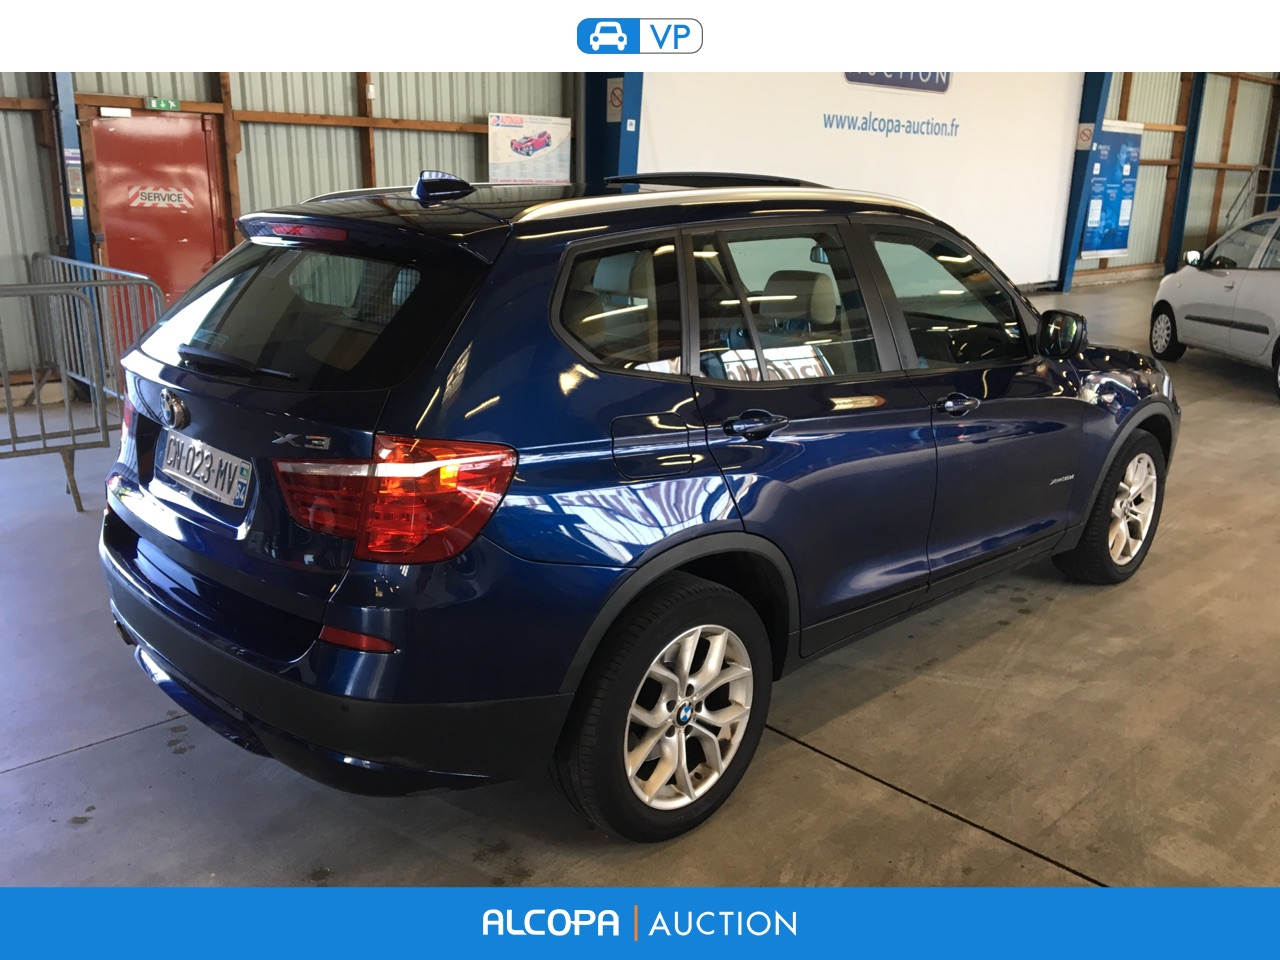 bmw x3 x3 xdrive35d 313ch exclusive steptronic a rennes alcopa auction. Black Bedroom Furniture Sets. Home Design Ideas